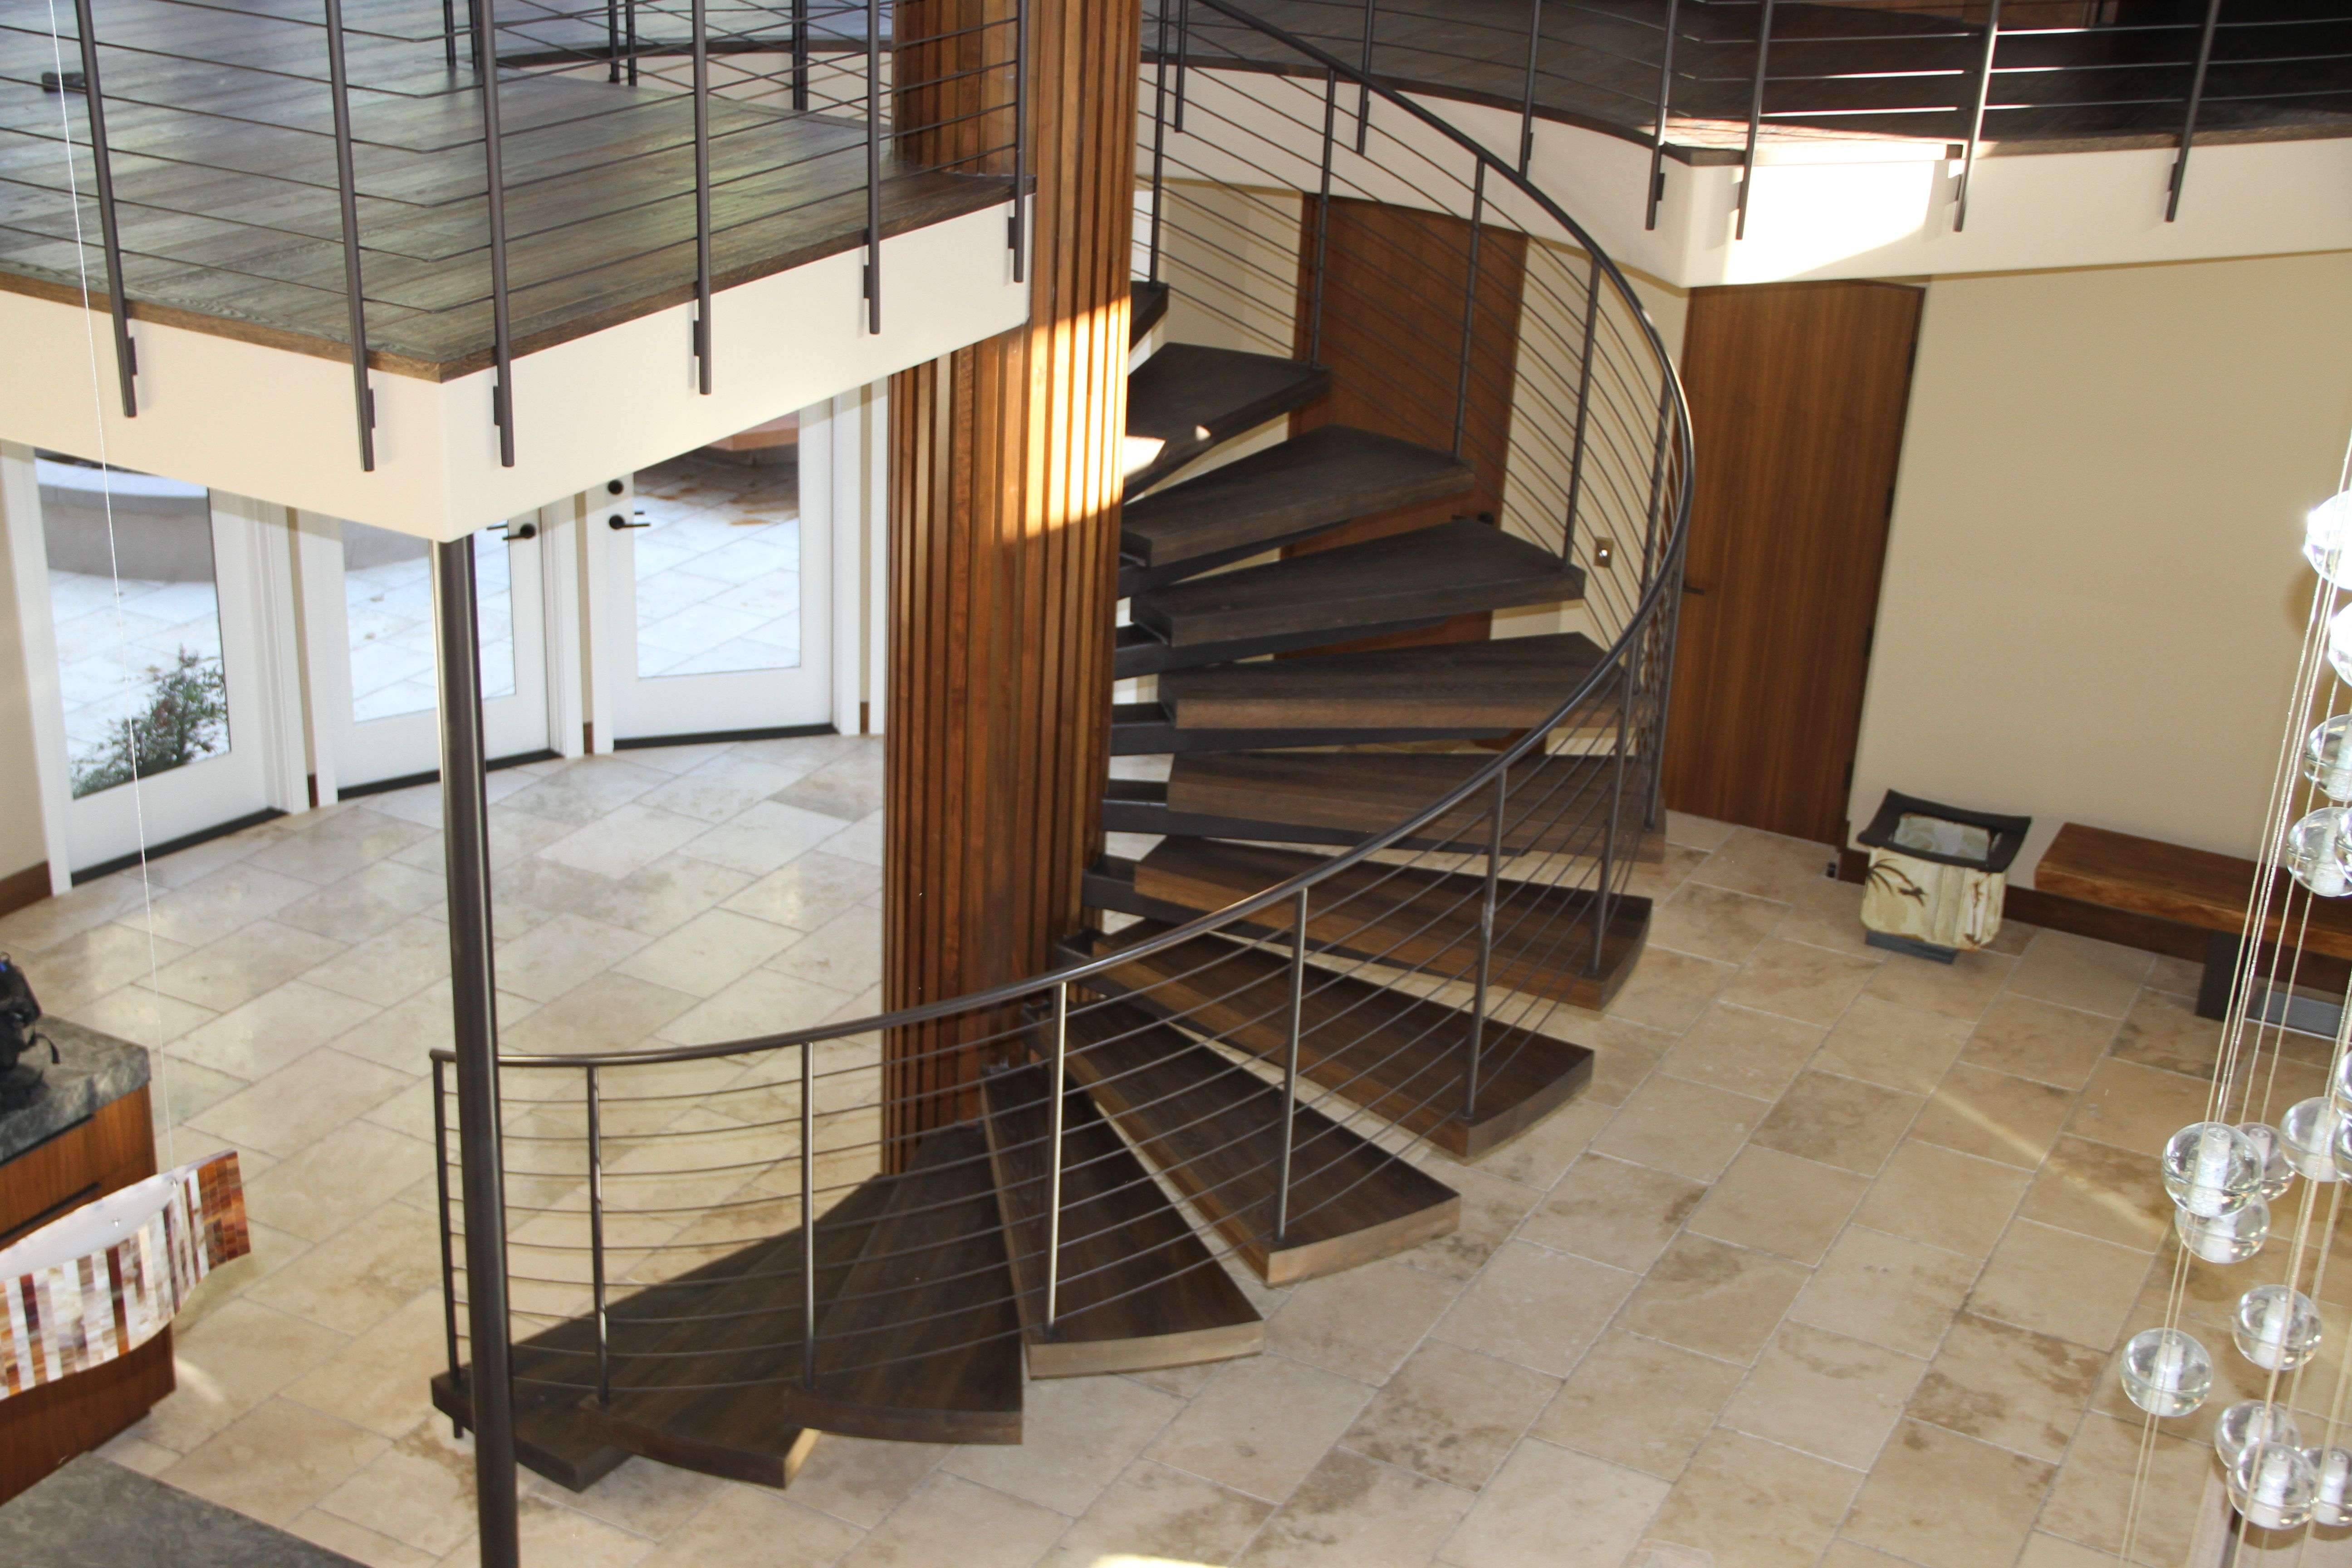 Chic Spiral Staircase Made With European White Oak Stair Treads With Hard  Oil Wax Finish